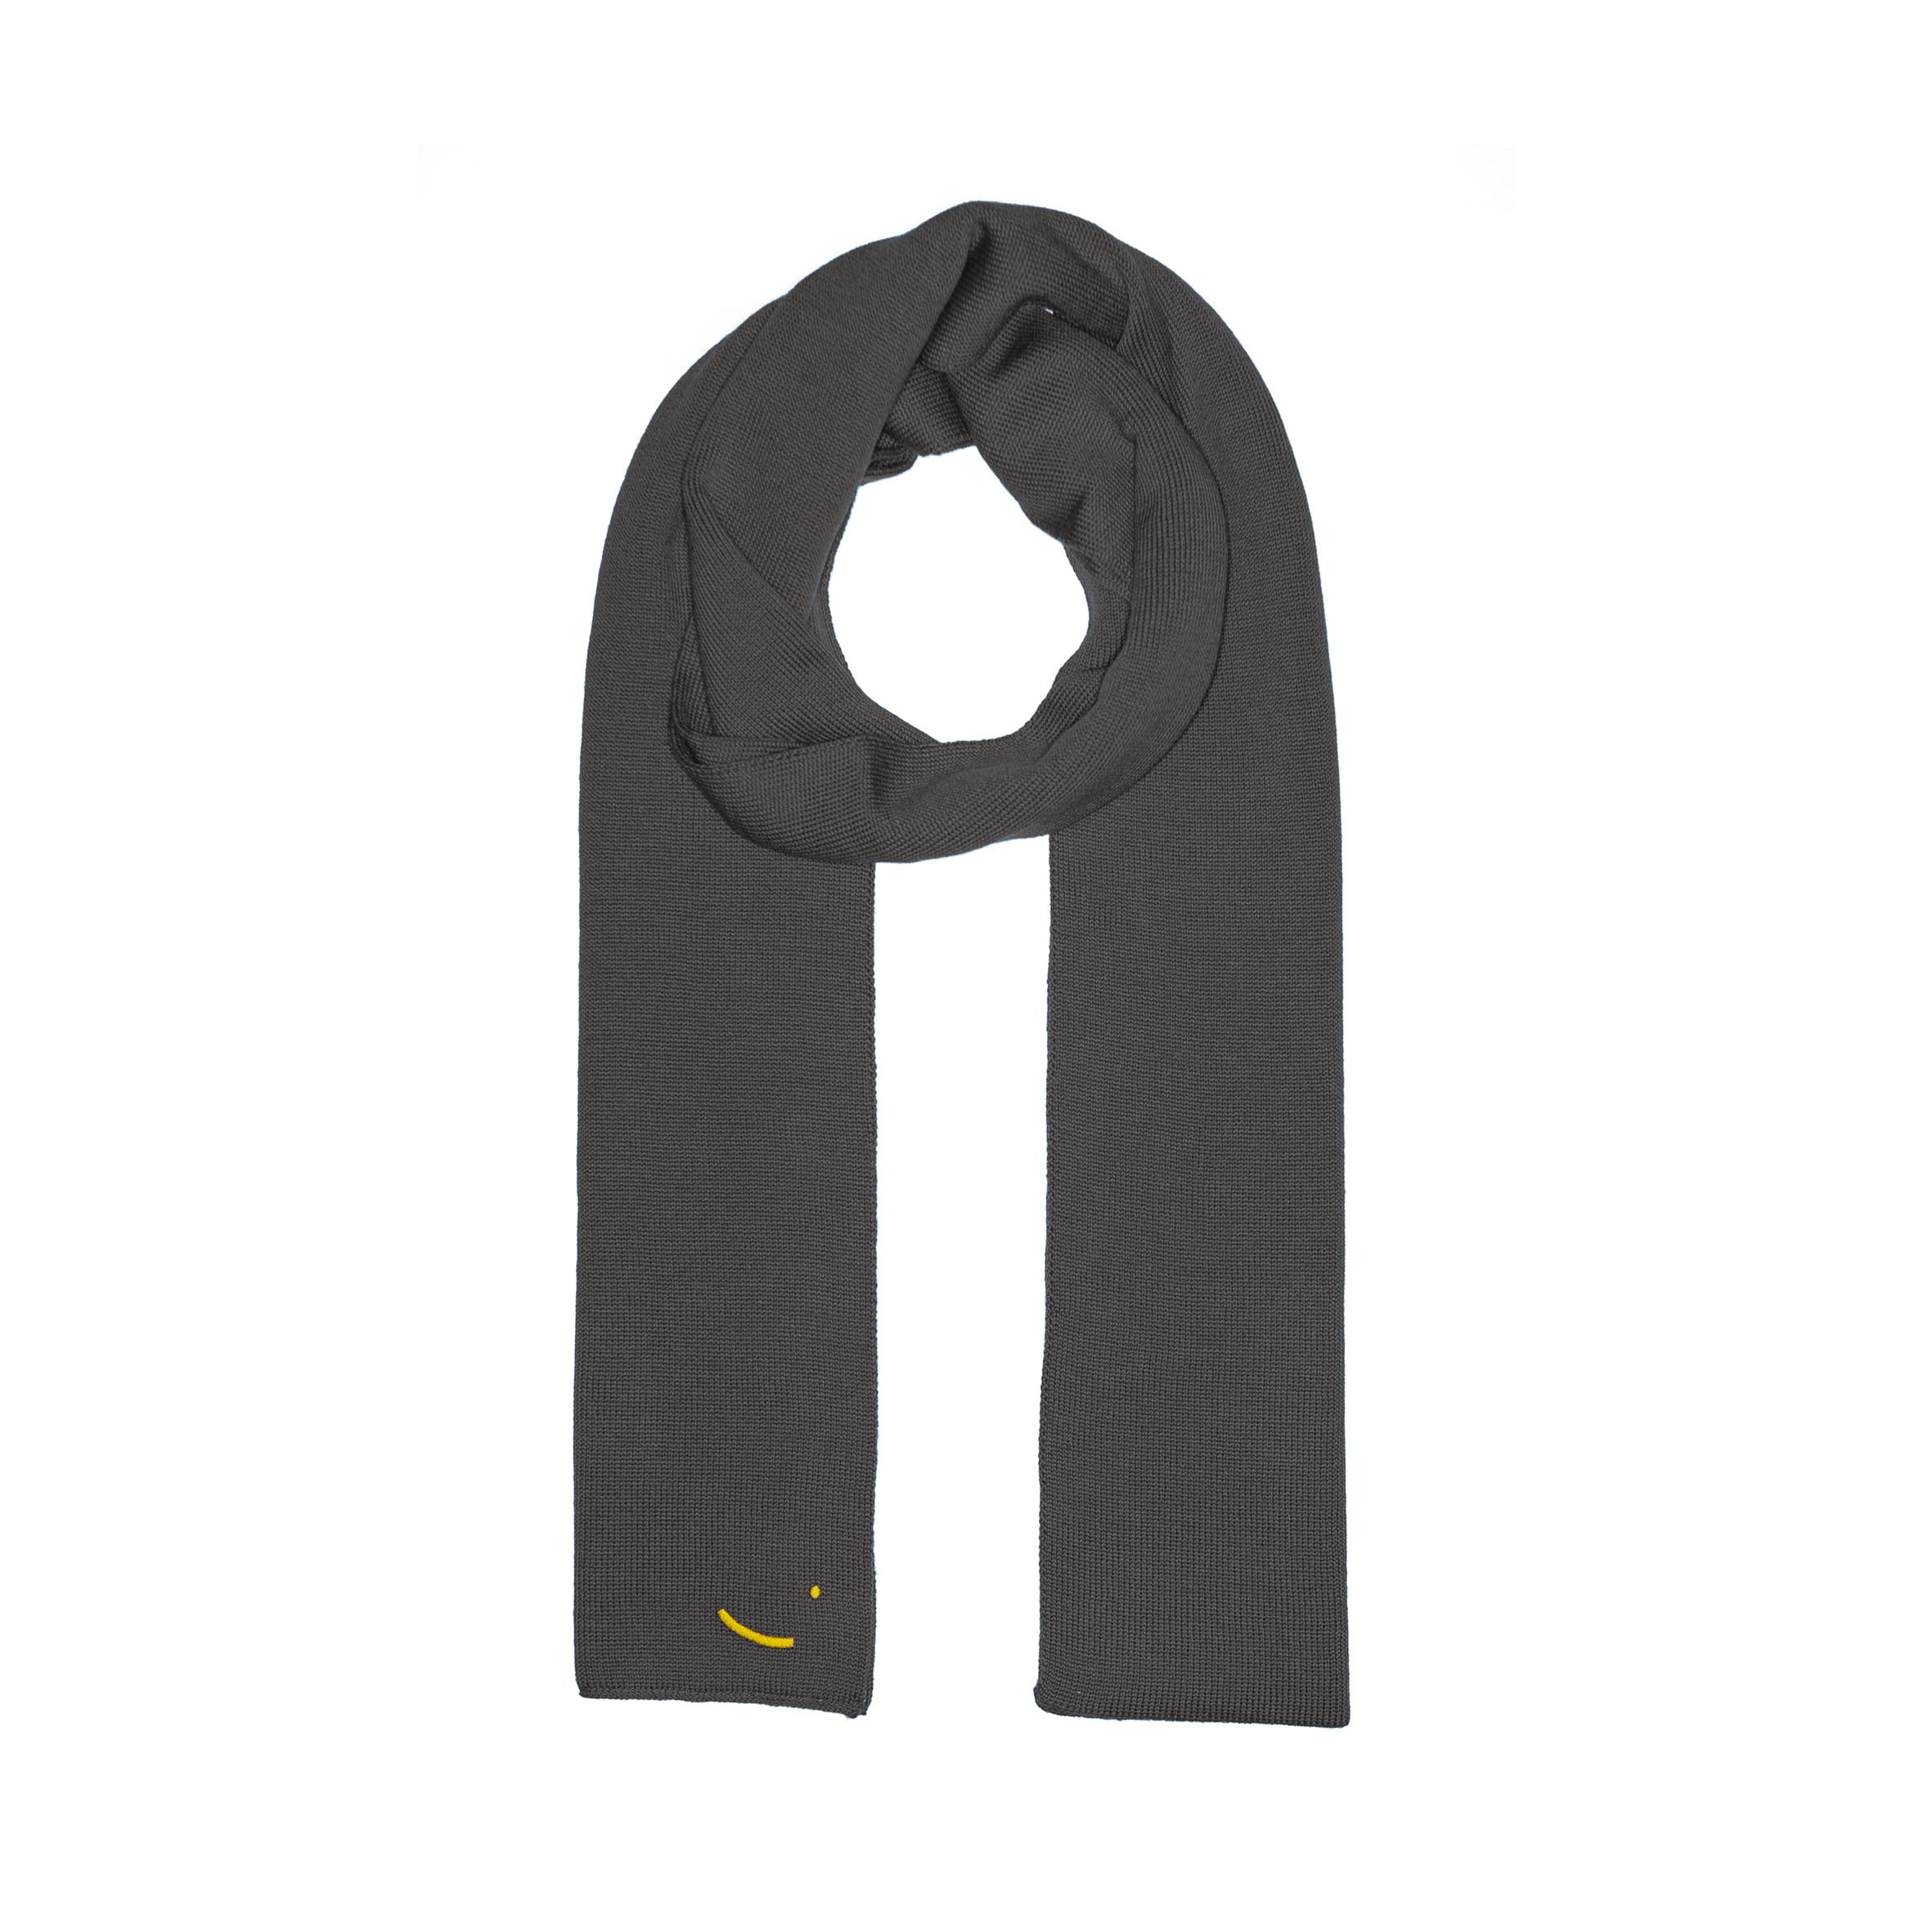 Mombasa Scarf Dark Grey from hatsup